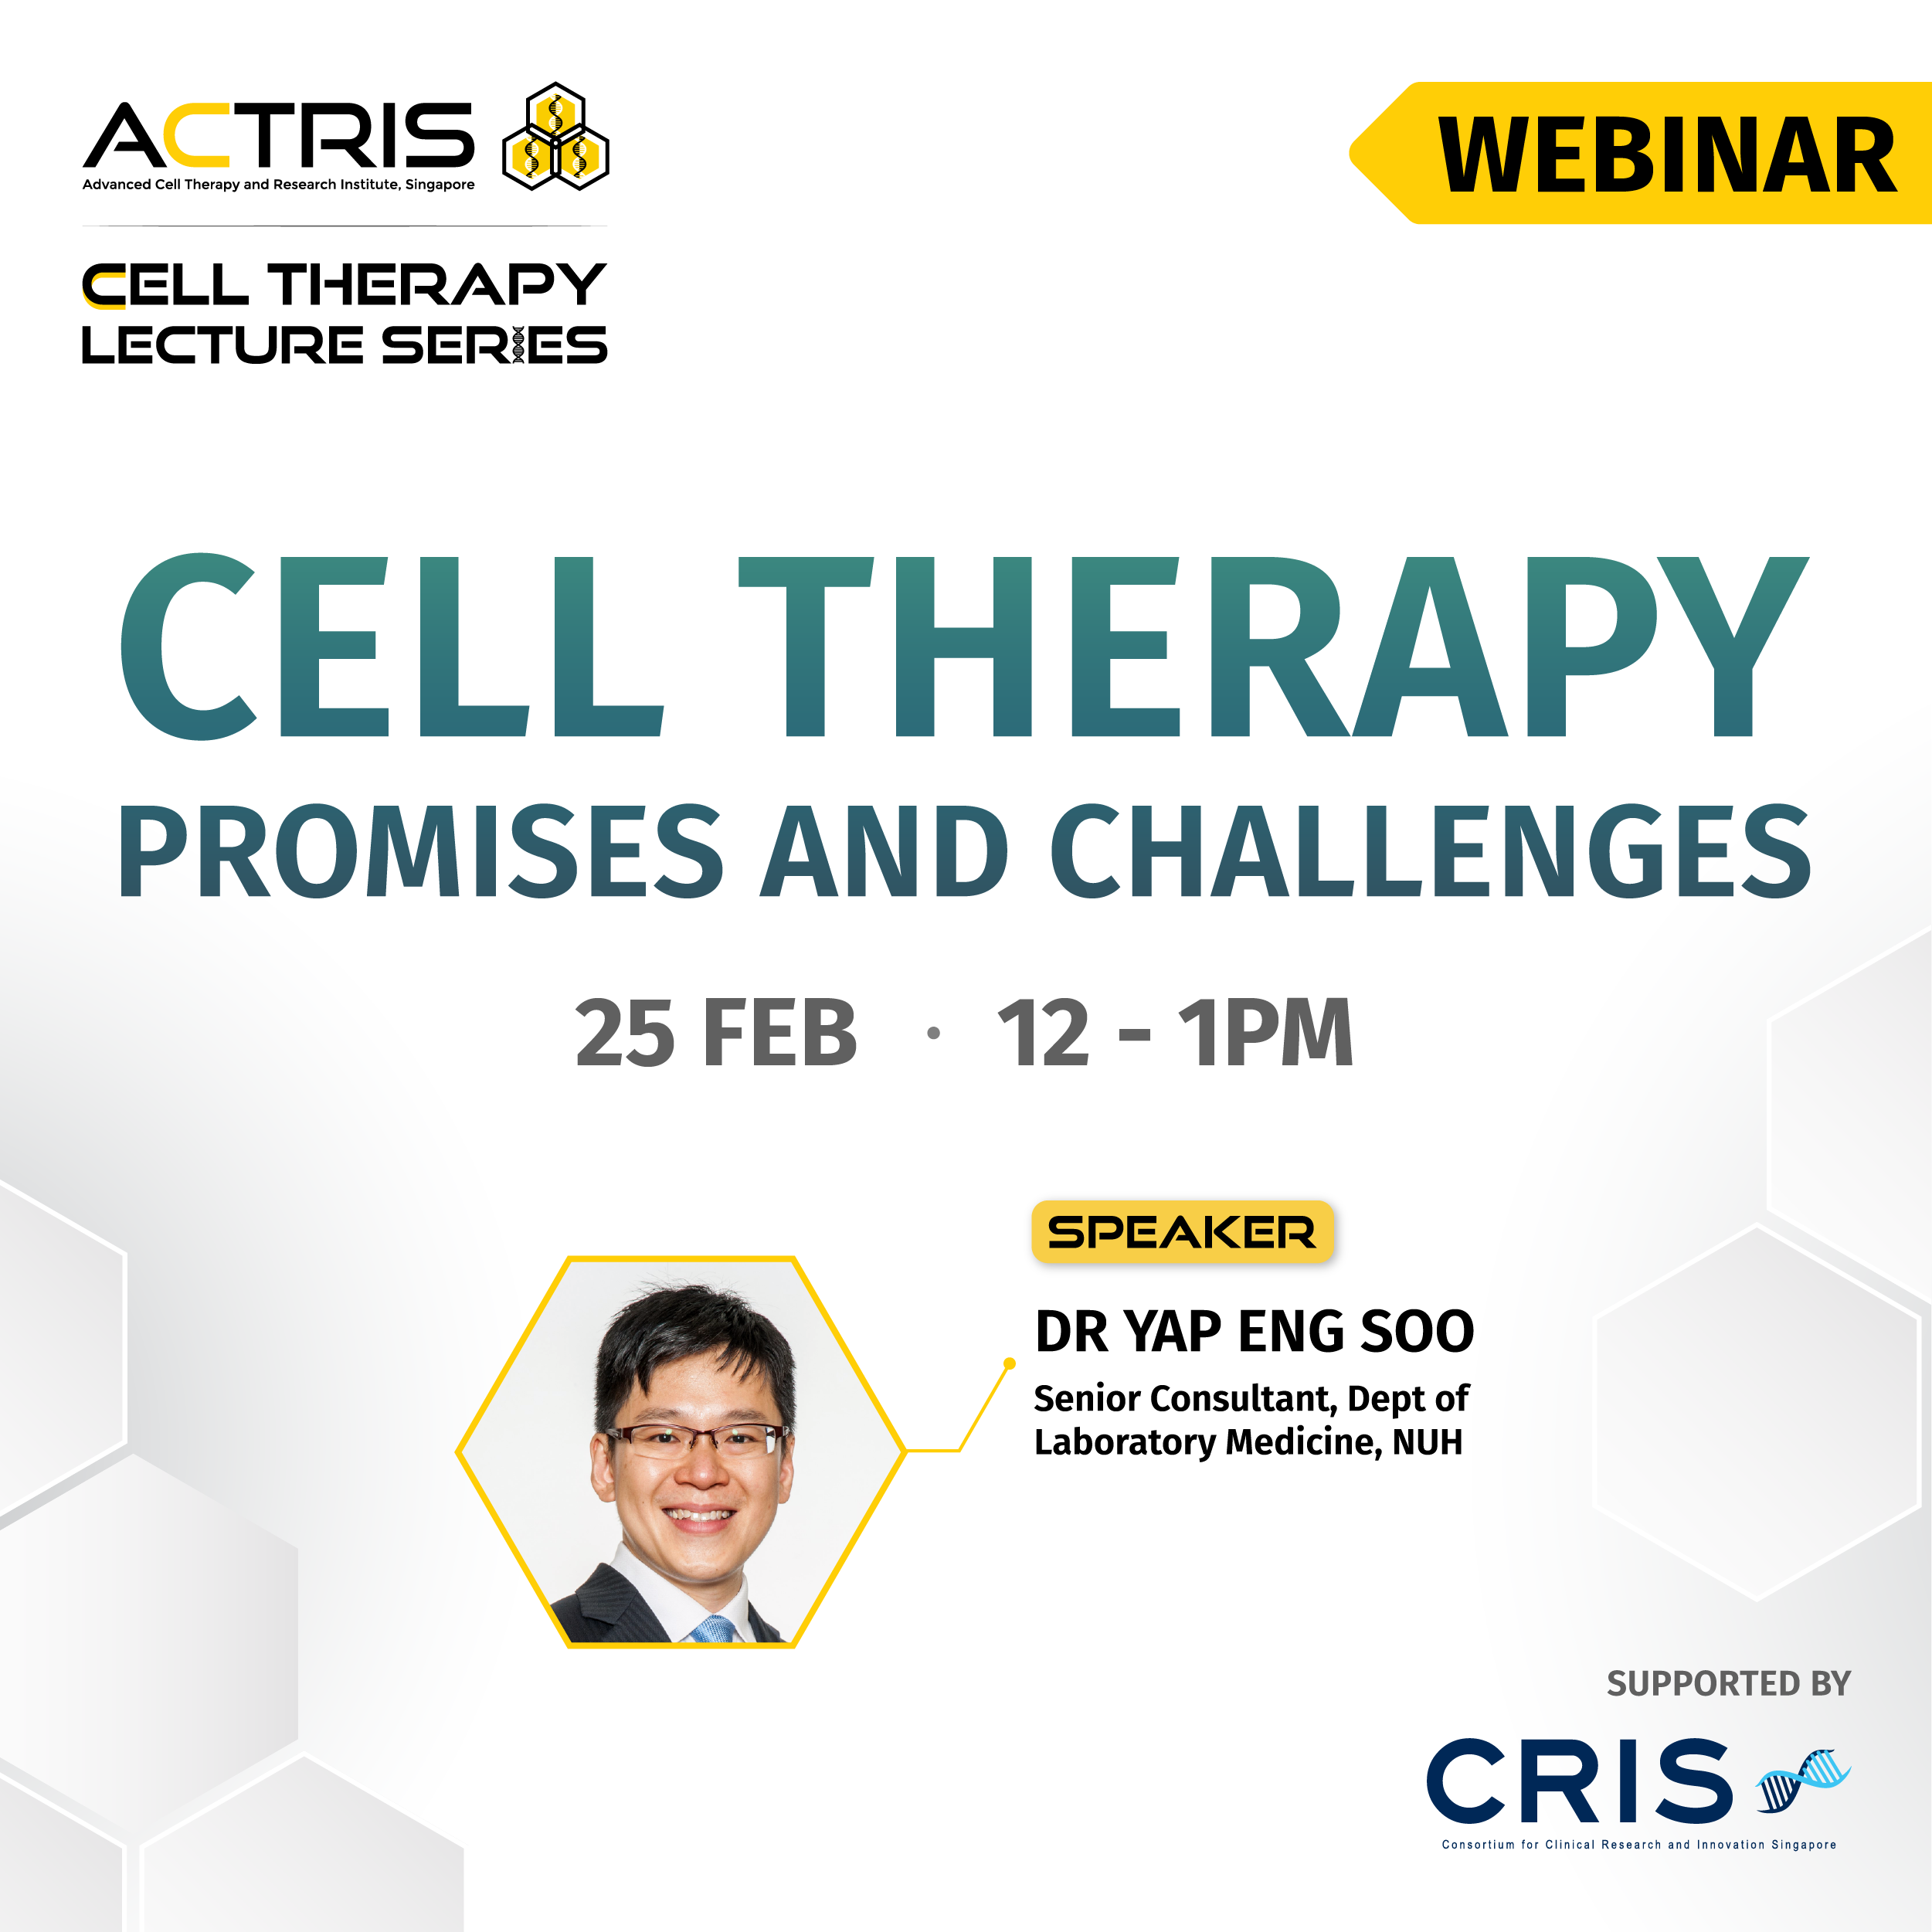 Cell Therapy: Promises and Challenges